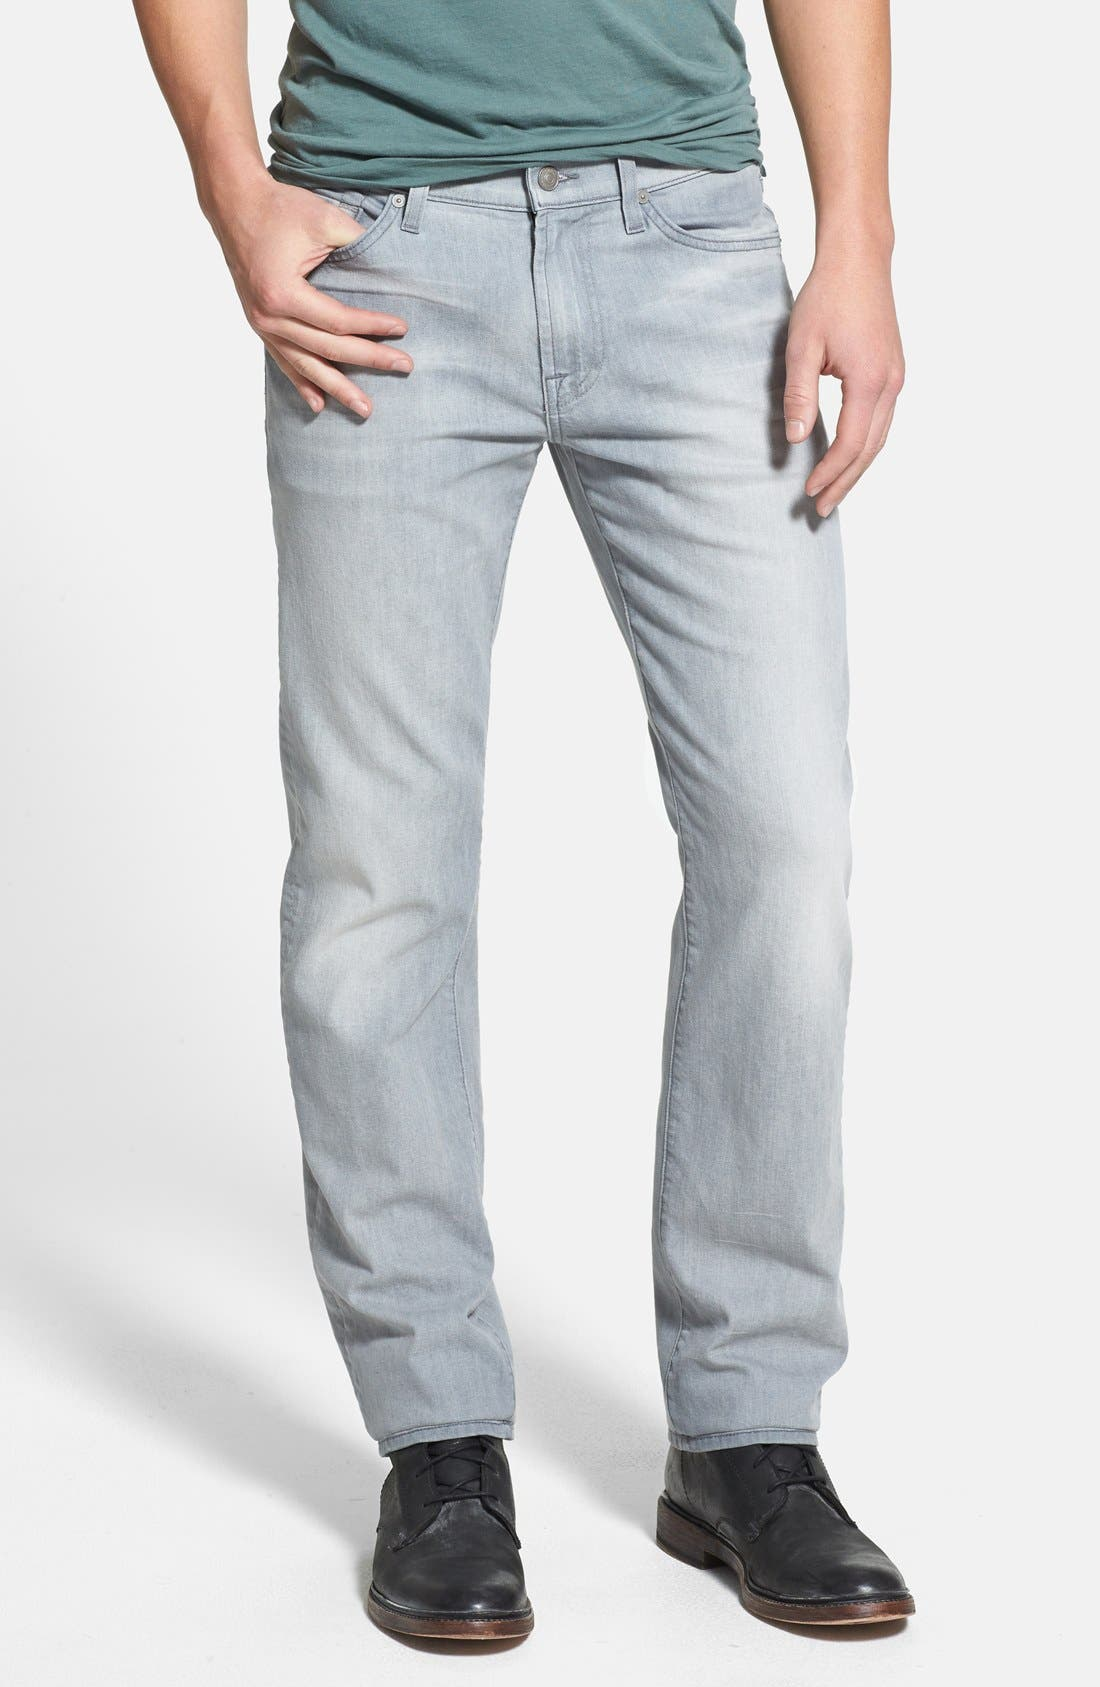 Alternate Image 1 Selected - 7 For All Mankind® 'Slimmy' Slim Straight Leg Jeans (Ghost Grey)